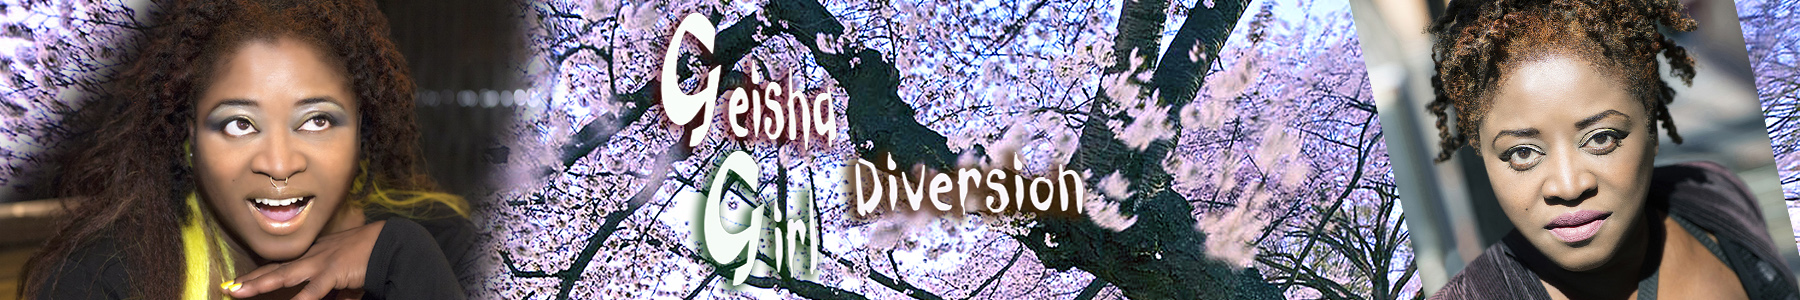 Geisha Girl Diversion